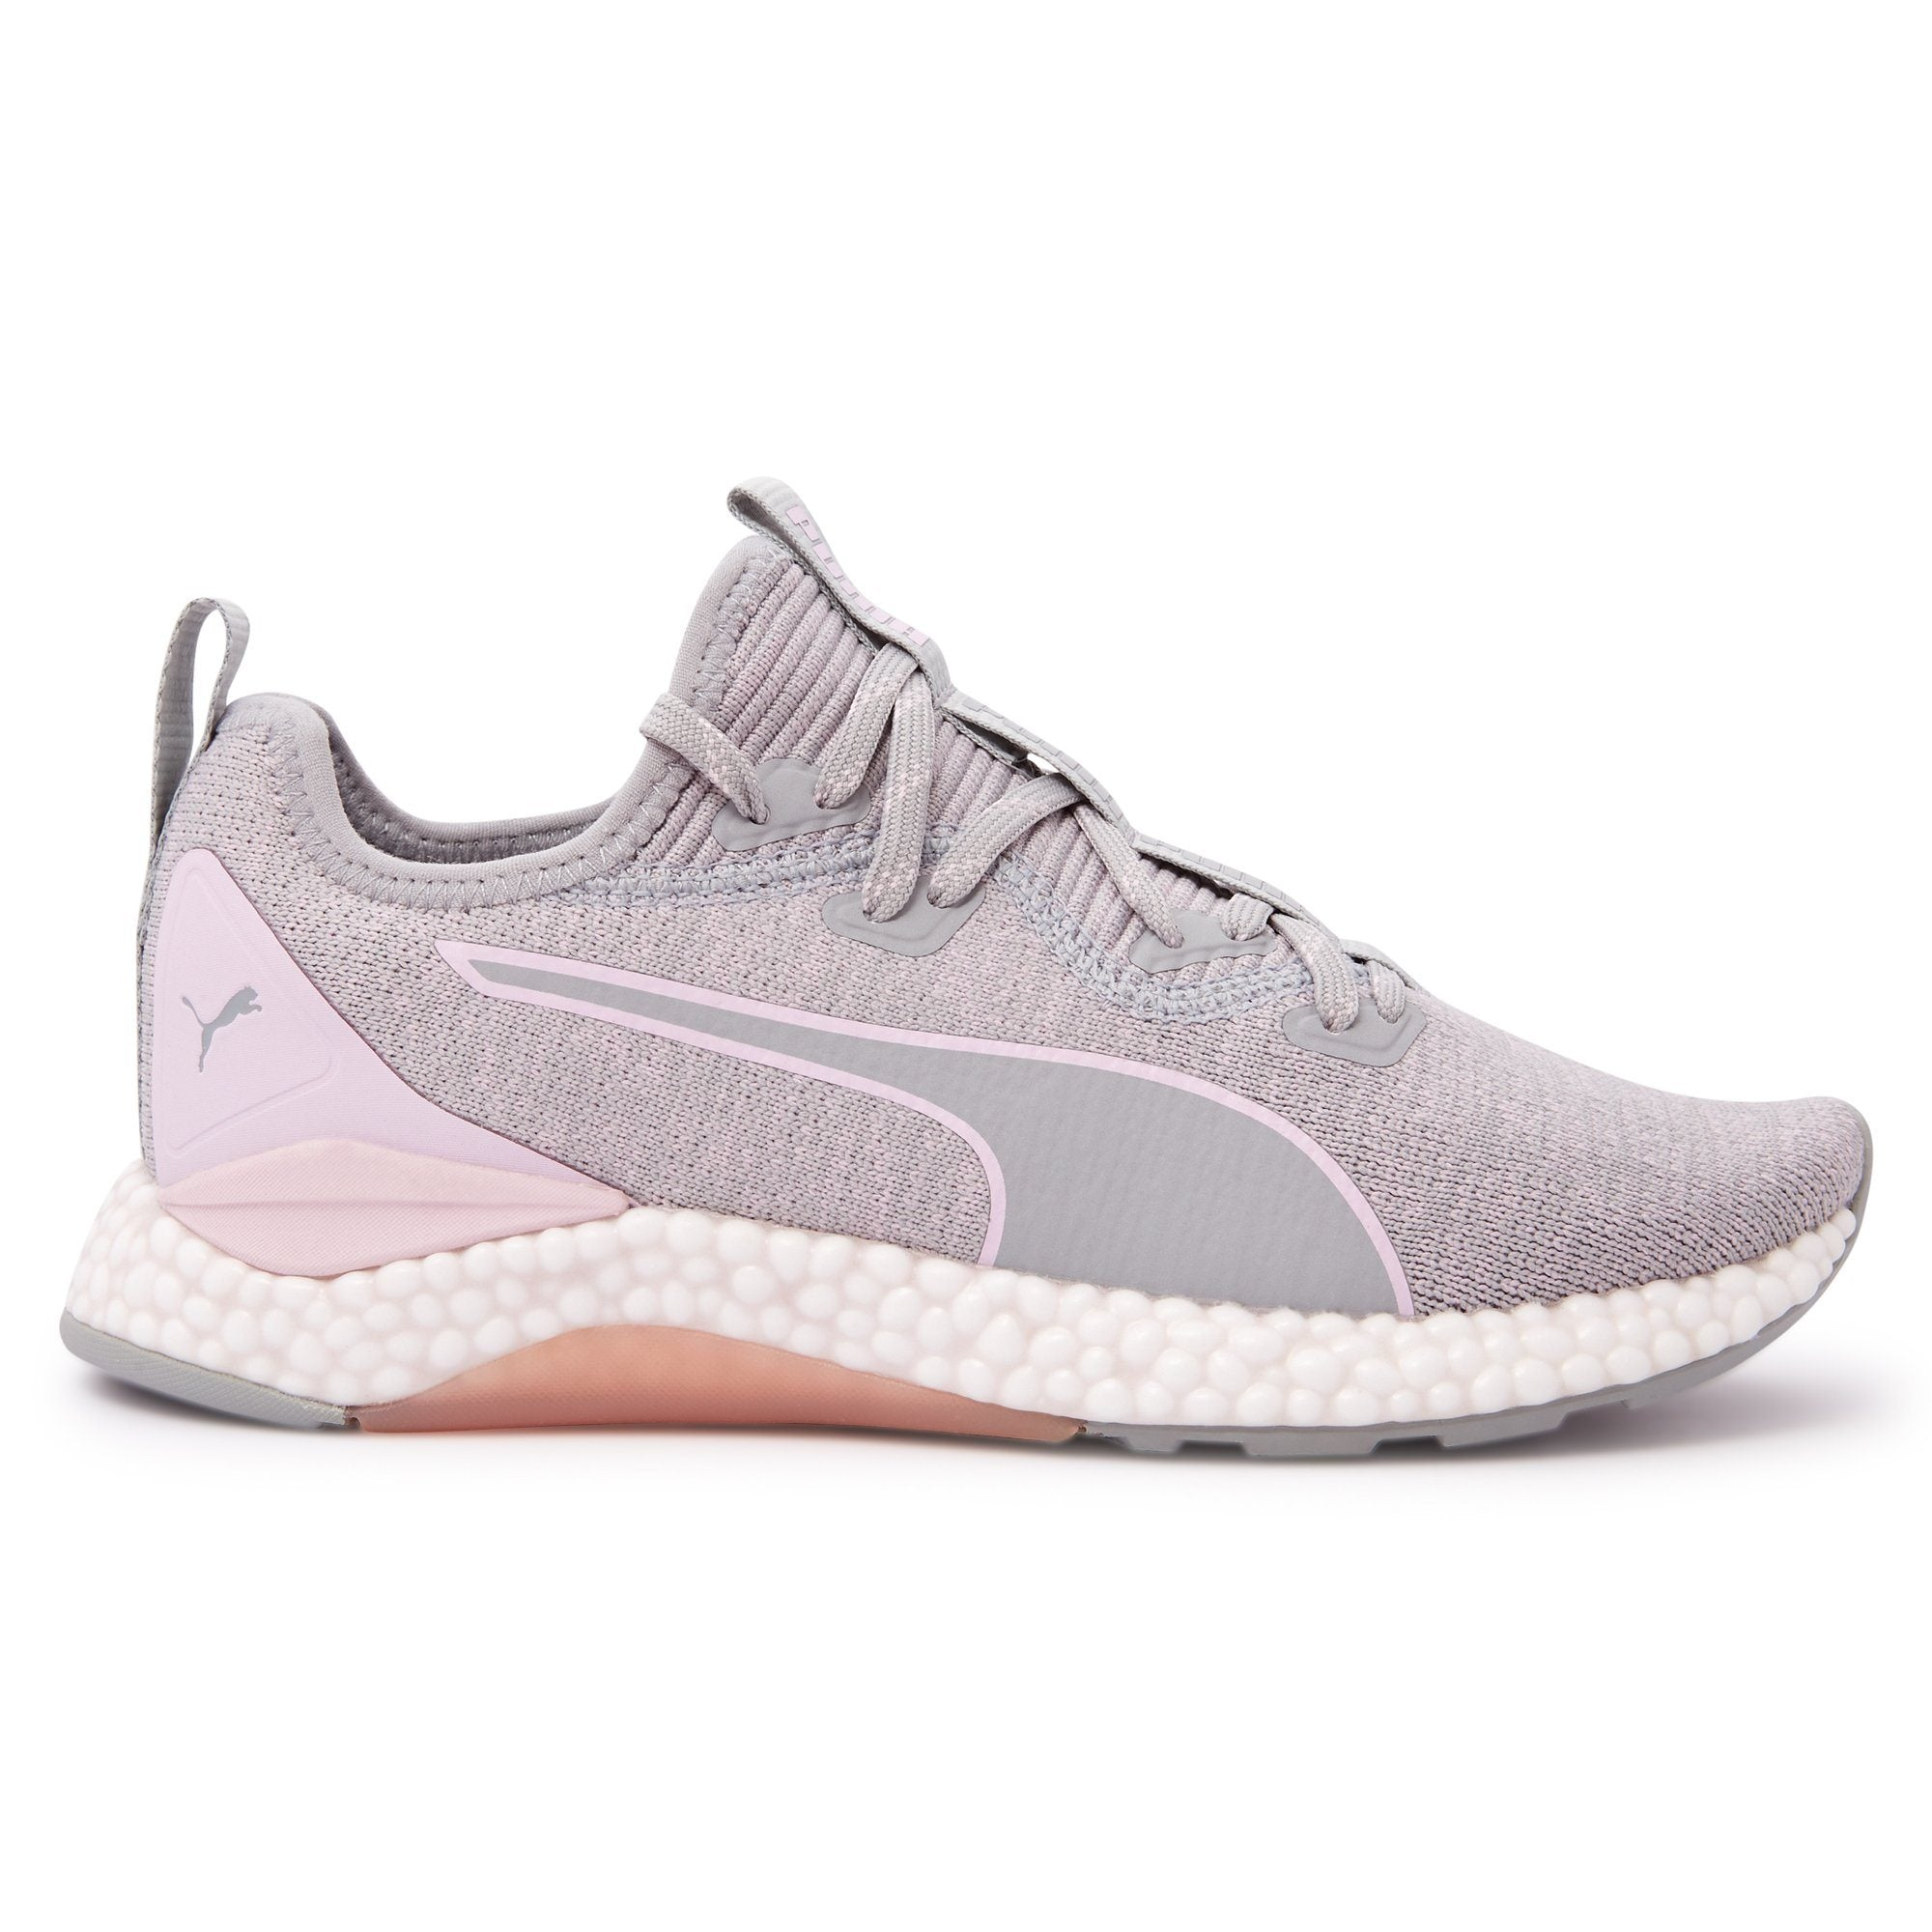 Puma Women's Hybrid Runner - Quarry Footwear Puma